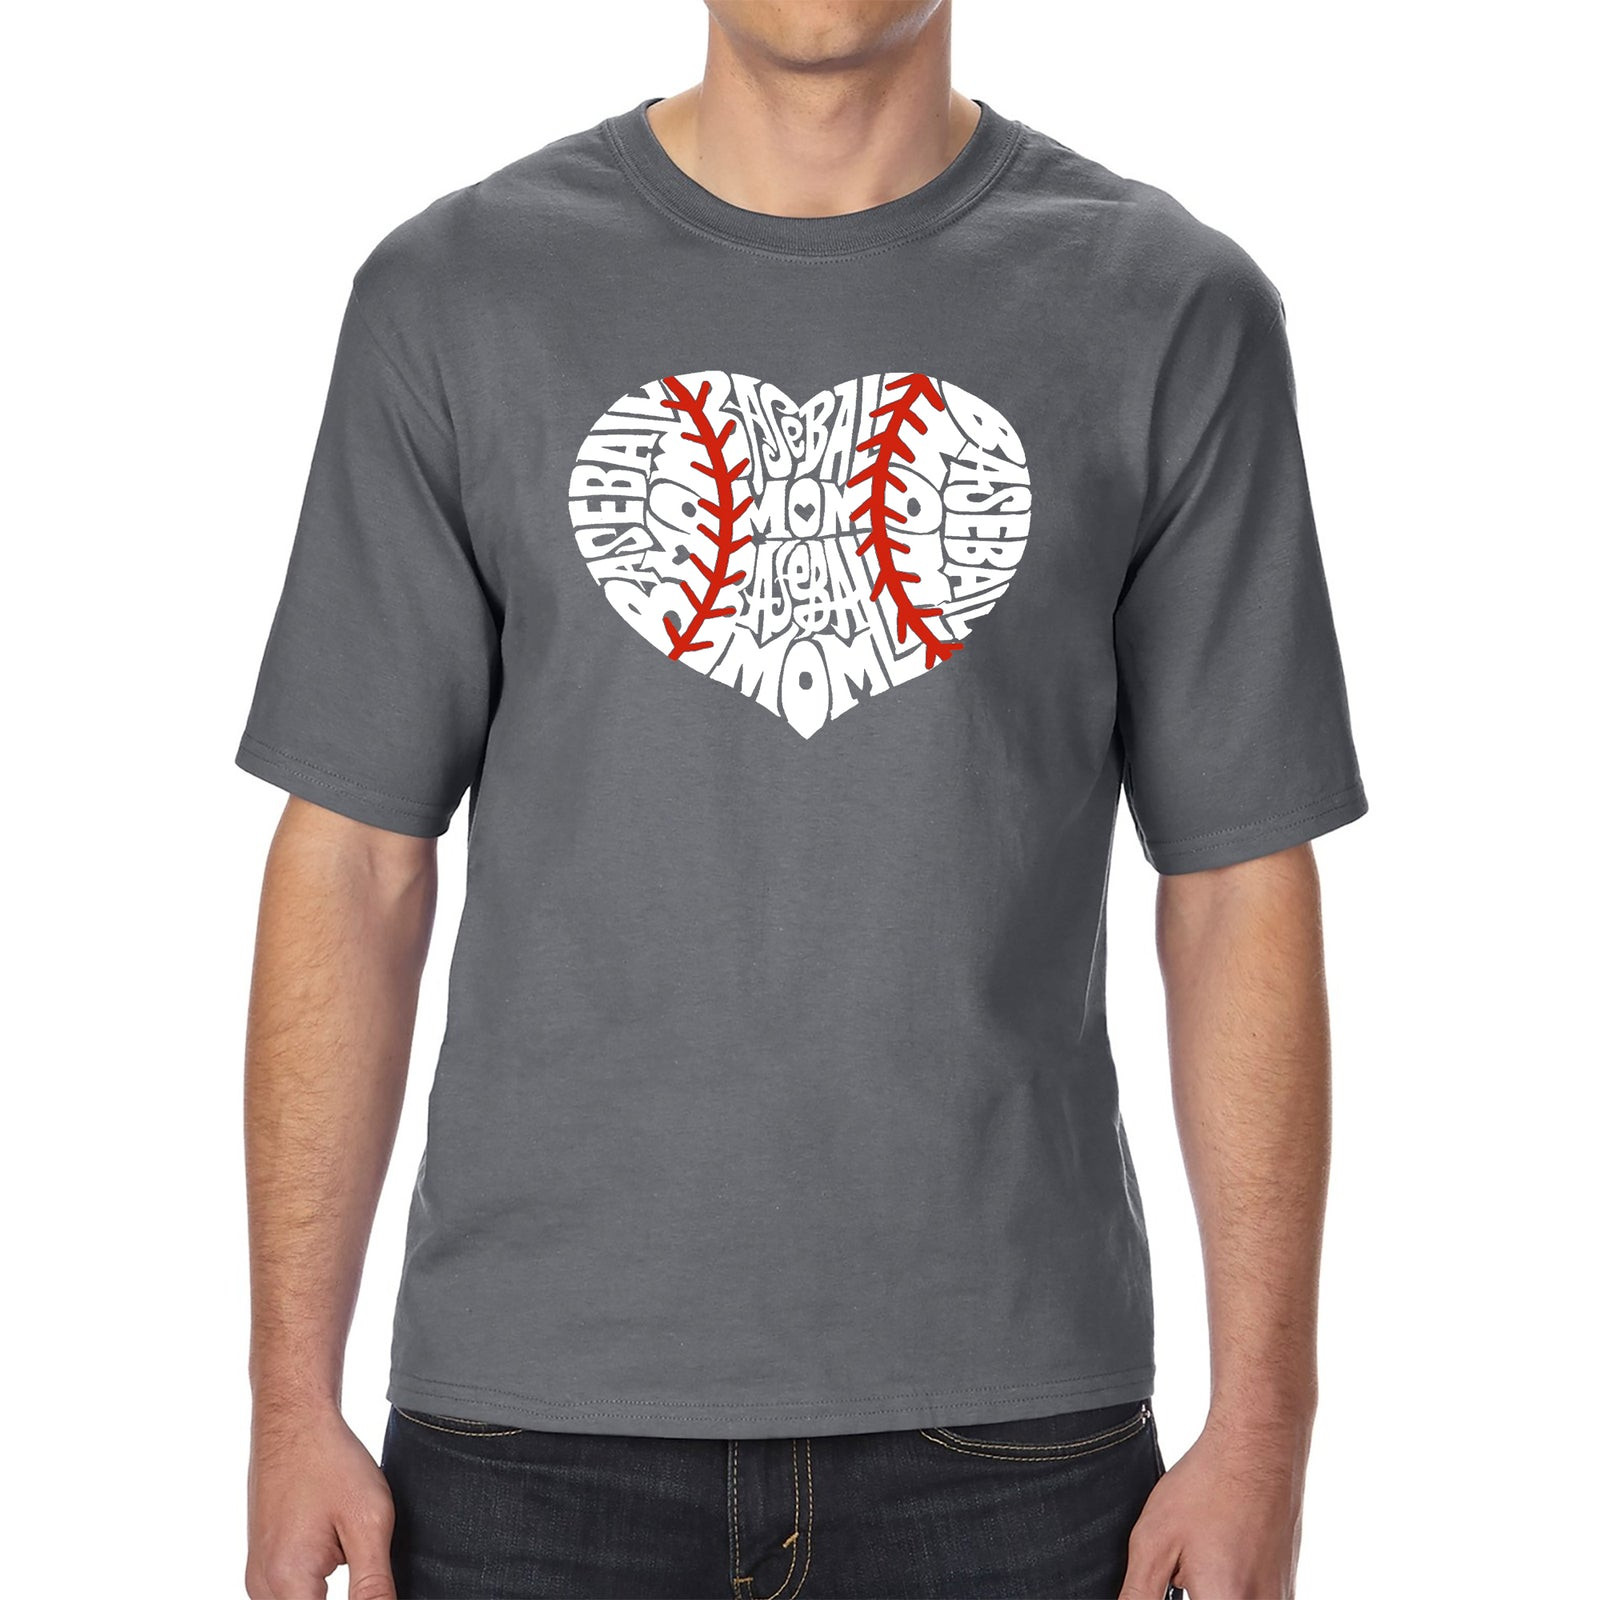 Men's Tall and Long Word Art T-shirt - Baseball Mom